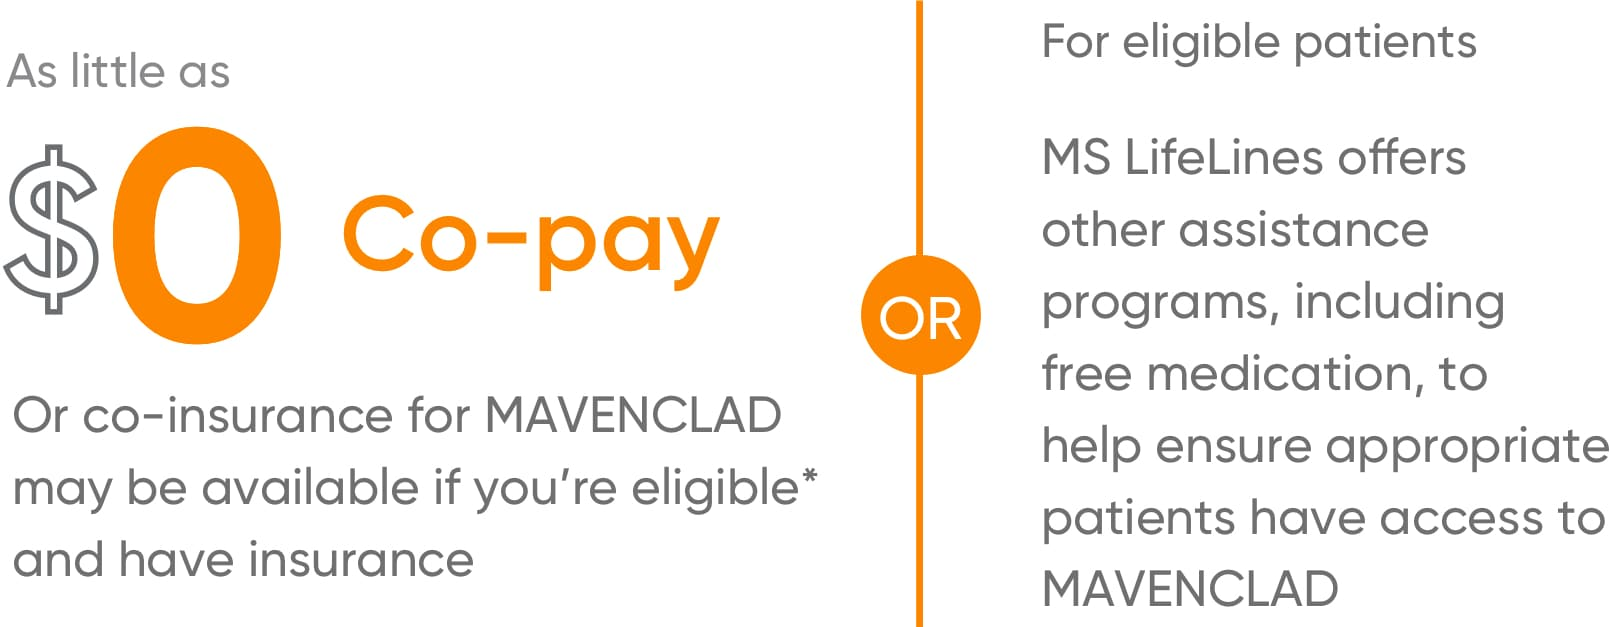 MAVENCLAD® co-pay can be as little as $0